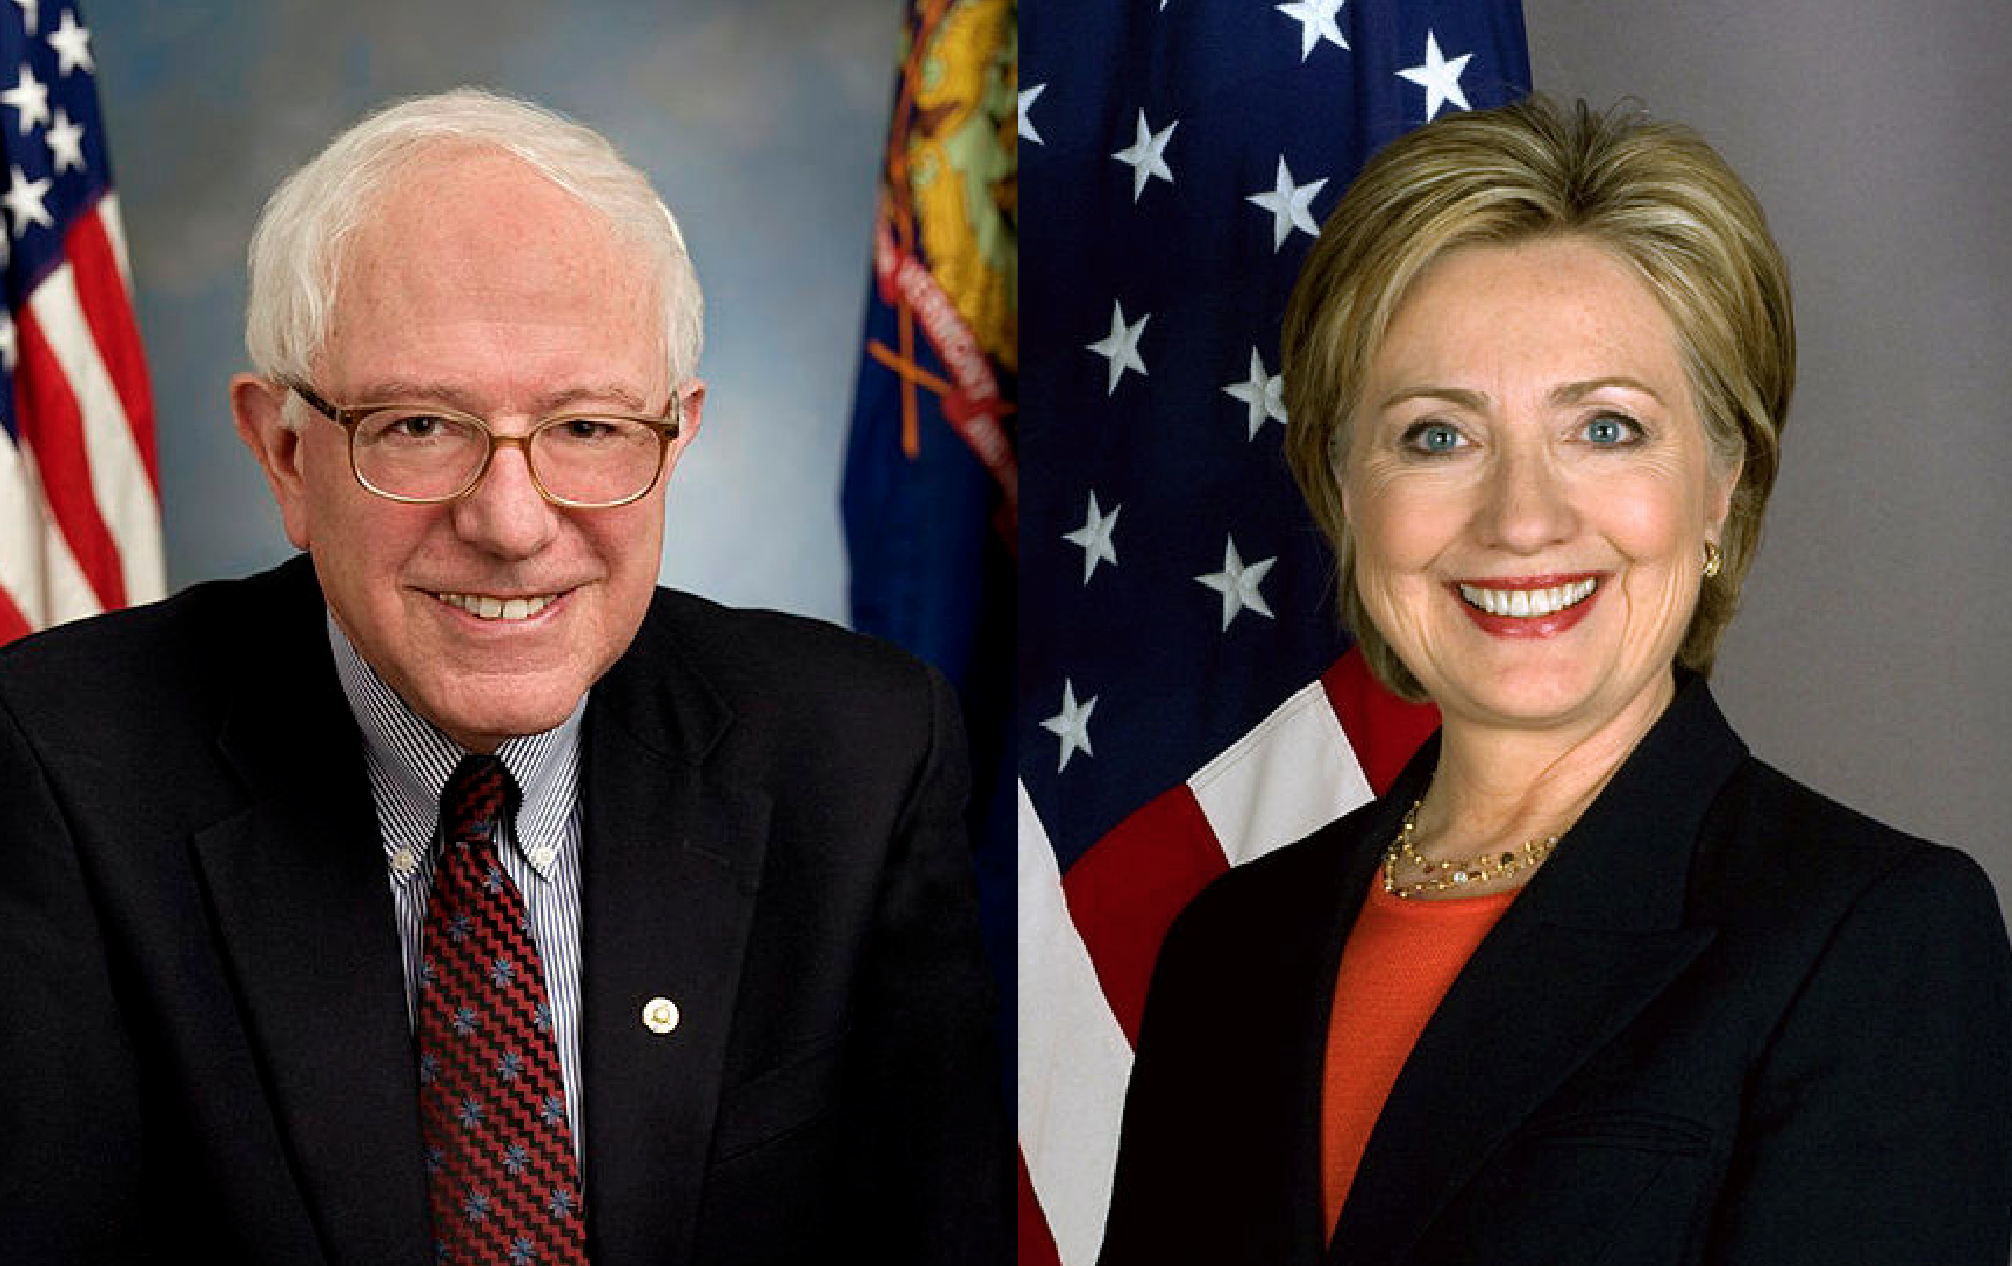 EnviroNews Poll: Who Is The Greener Candidate? Sanders or Clinton?